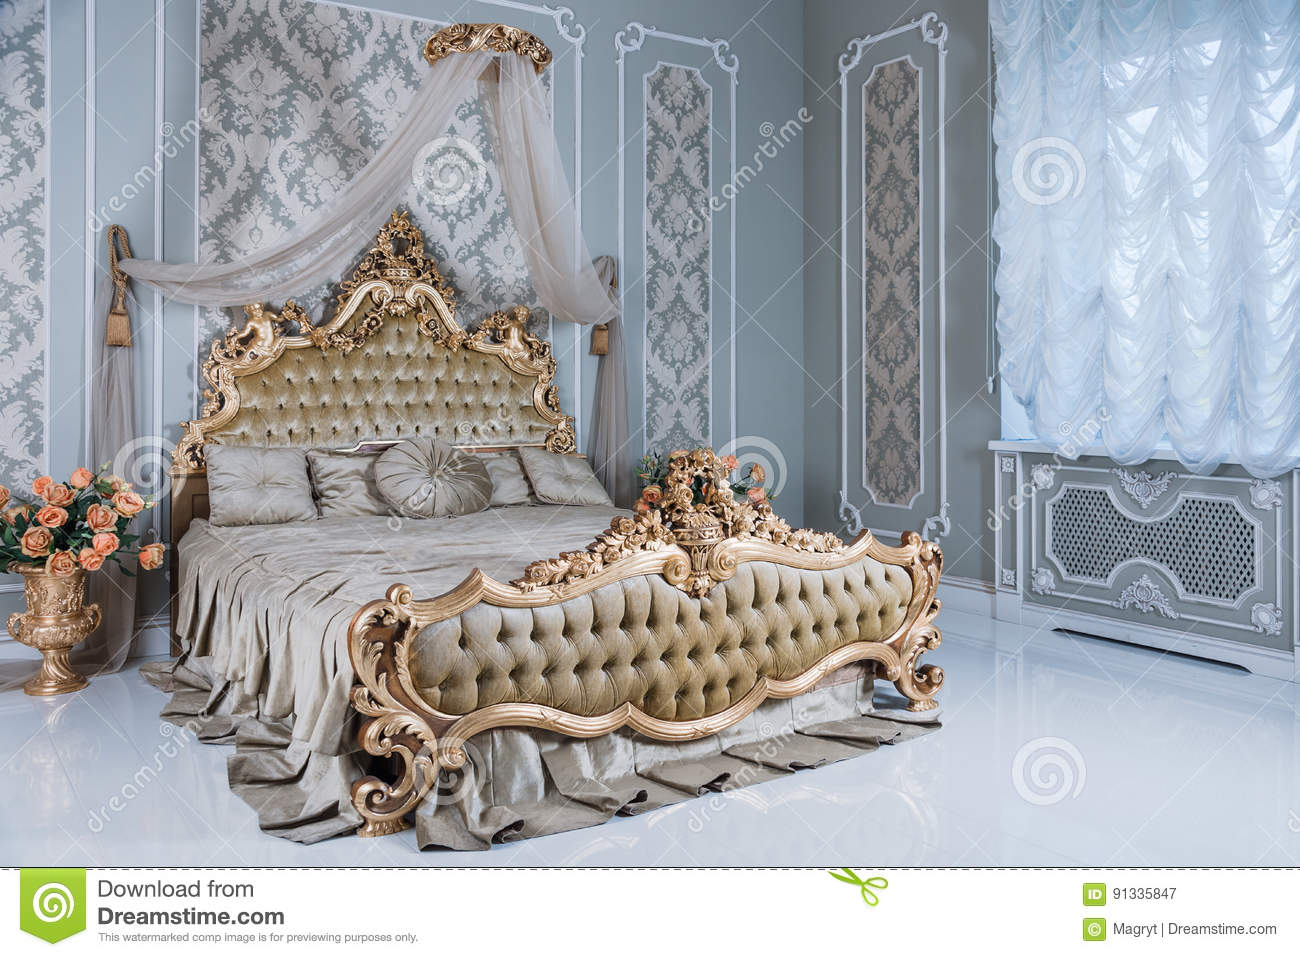 3 496 Royal Bed Photos Free Royalty Free Stock Photos From Dreamstime